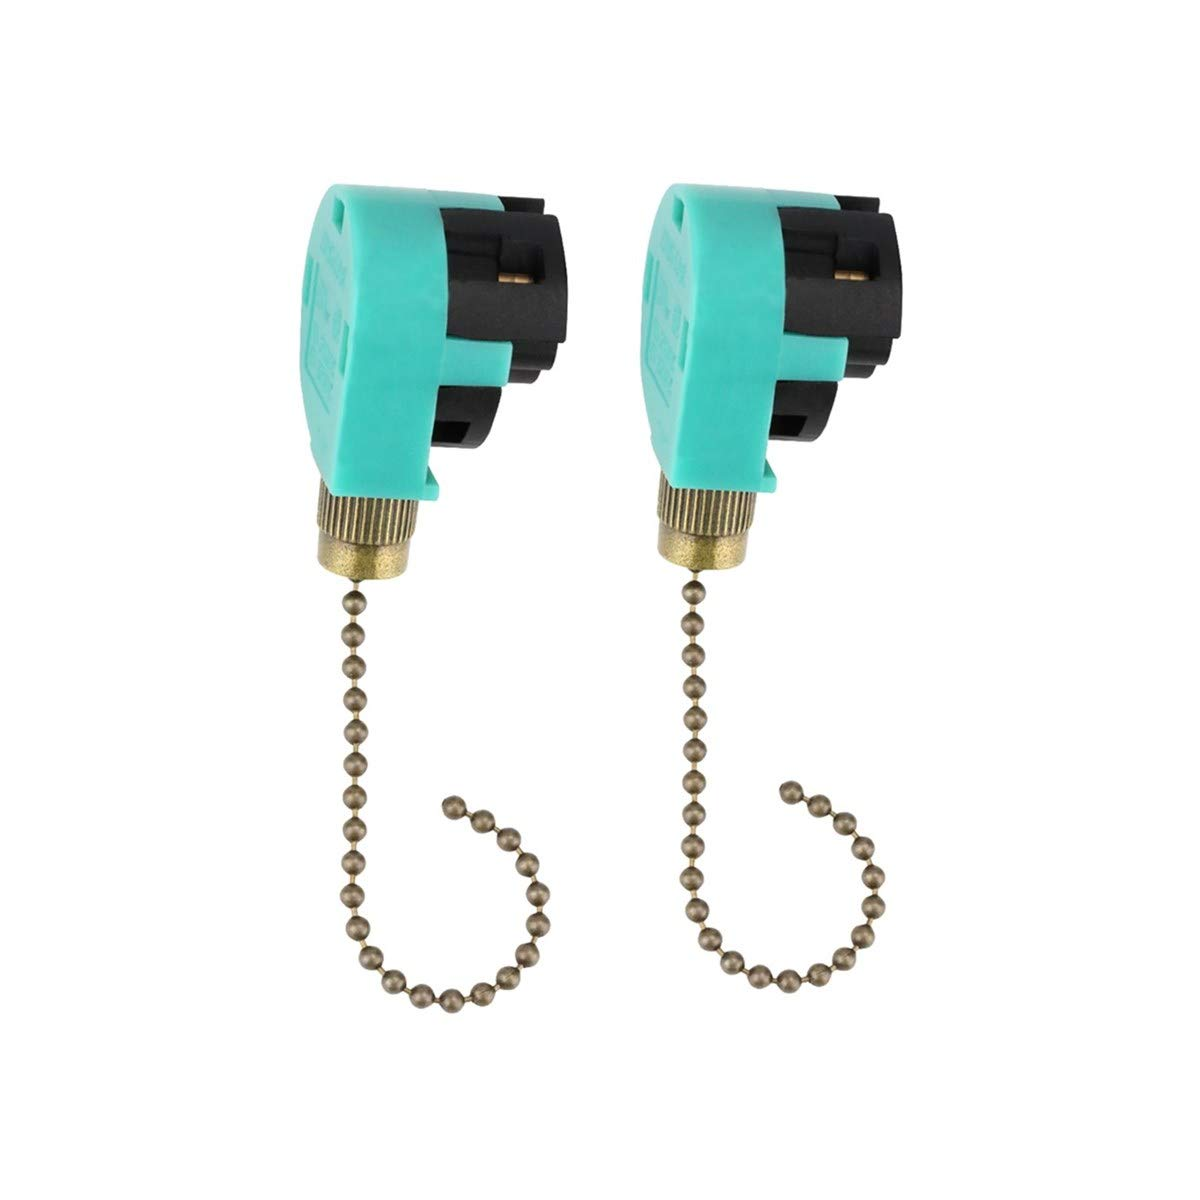 2pcs Ceiling Fan Switch Pull Chain Control Ze 268s6 208s6 3 Speed Zing Ear Wiring Diagram Besides 4 Wire Ceailing Replacement Antique